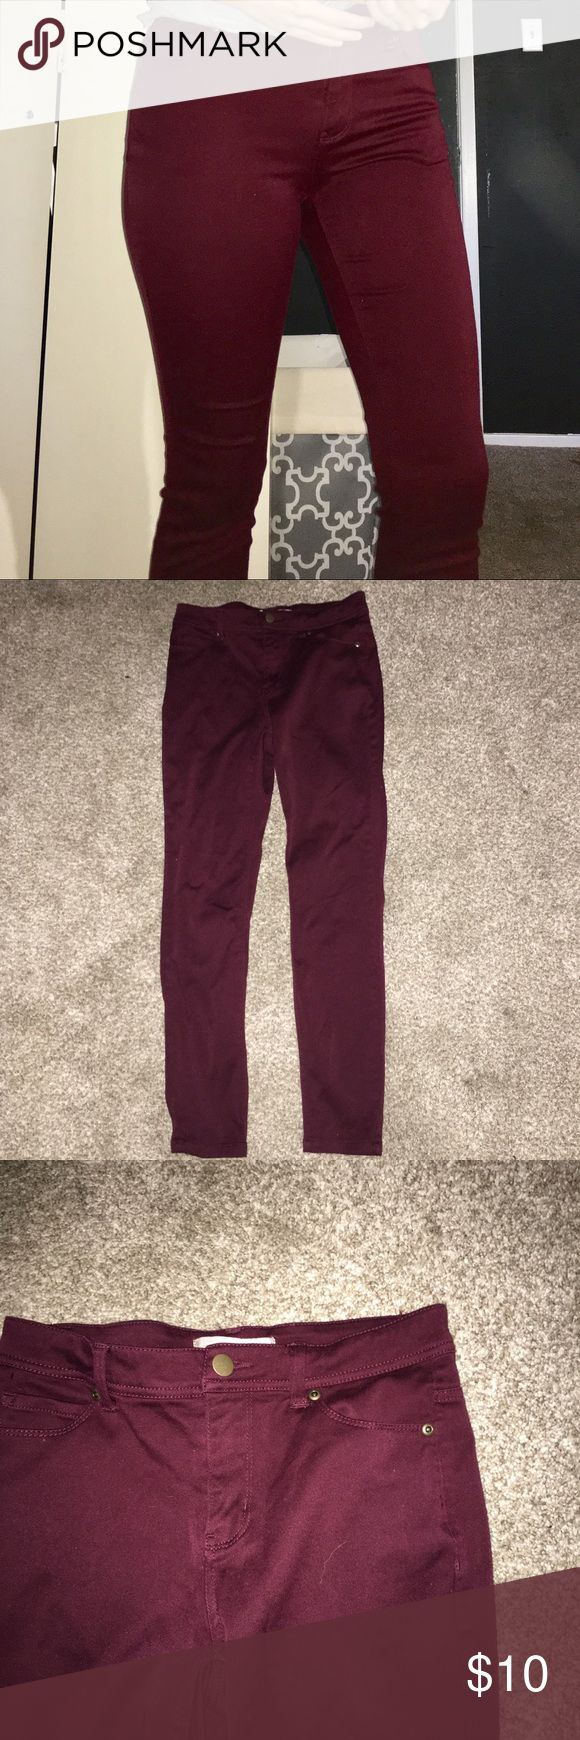 Maroon Skinny Jeans Maroon skinny jeans. Very soft and comfy material, just a little tight on me so that's why I am selling. Never worn, only tried on here and there and then put back in my closet. For reference, I am 5'3 and my waist is about a 27/28 in inches. Forever 21 Jeans Skinny